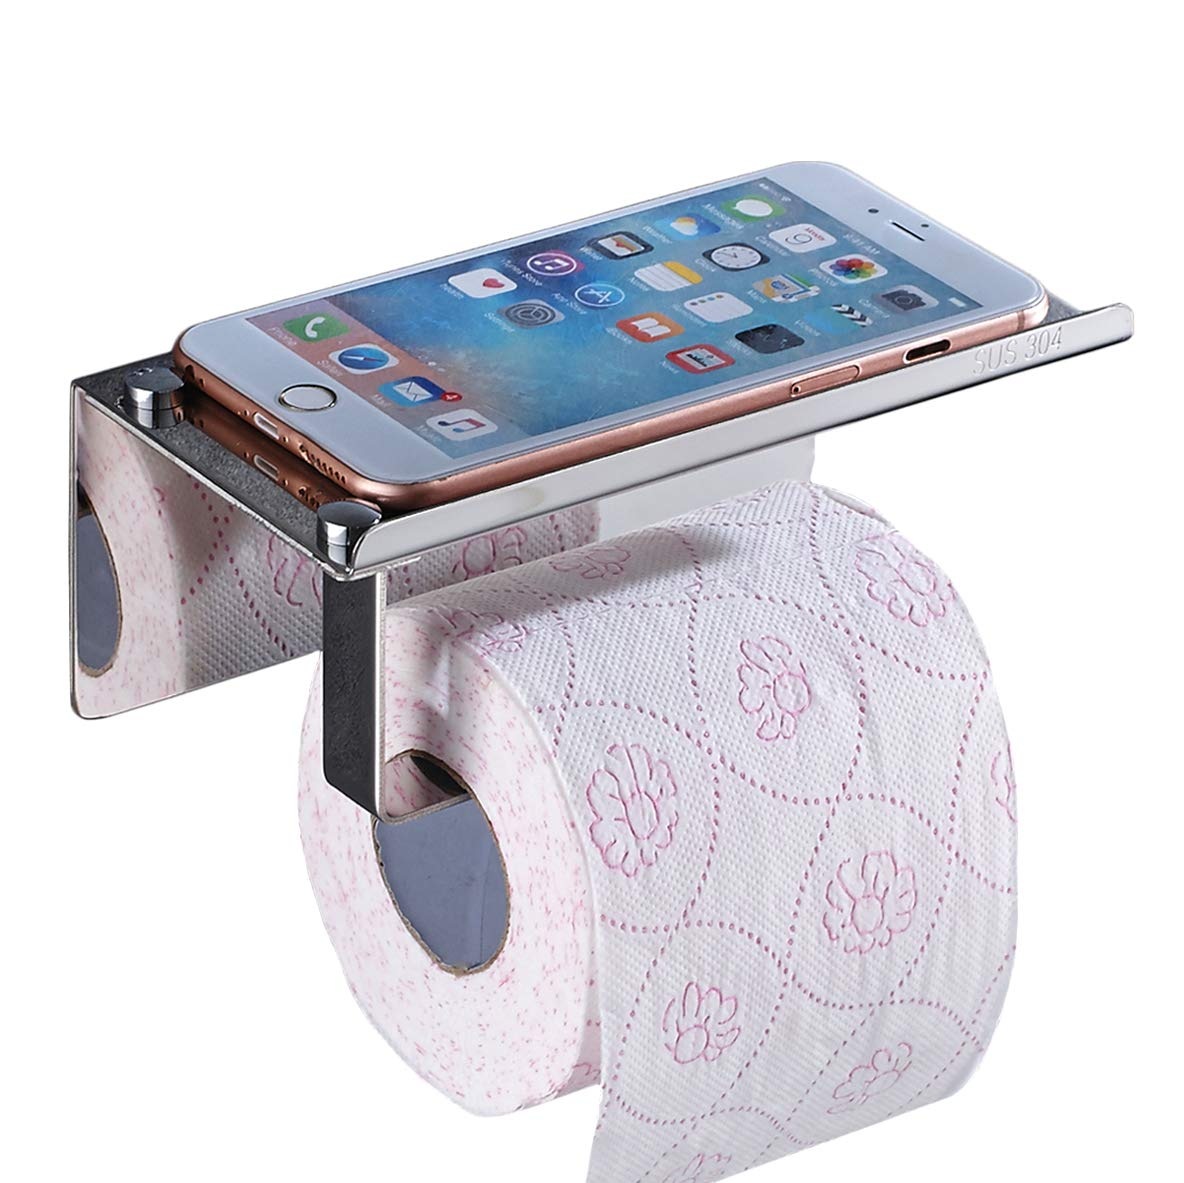 Toilet Paper Holder, No-Drilling SUS304 Stainless Steel Bathroom Tissue Holder with Mobile Phone Storage Shelf, 3M Self-Adhesive